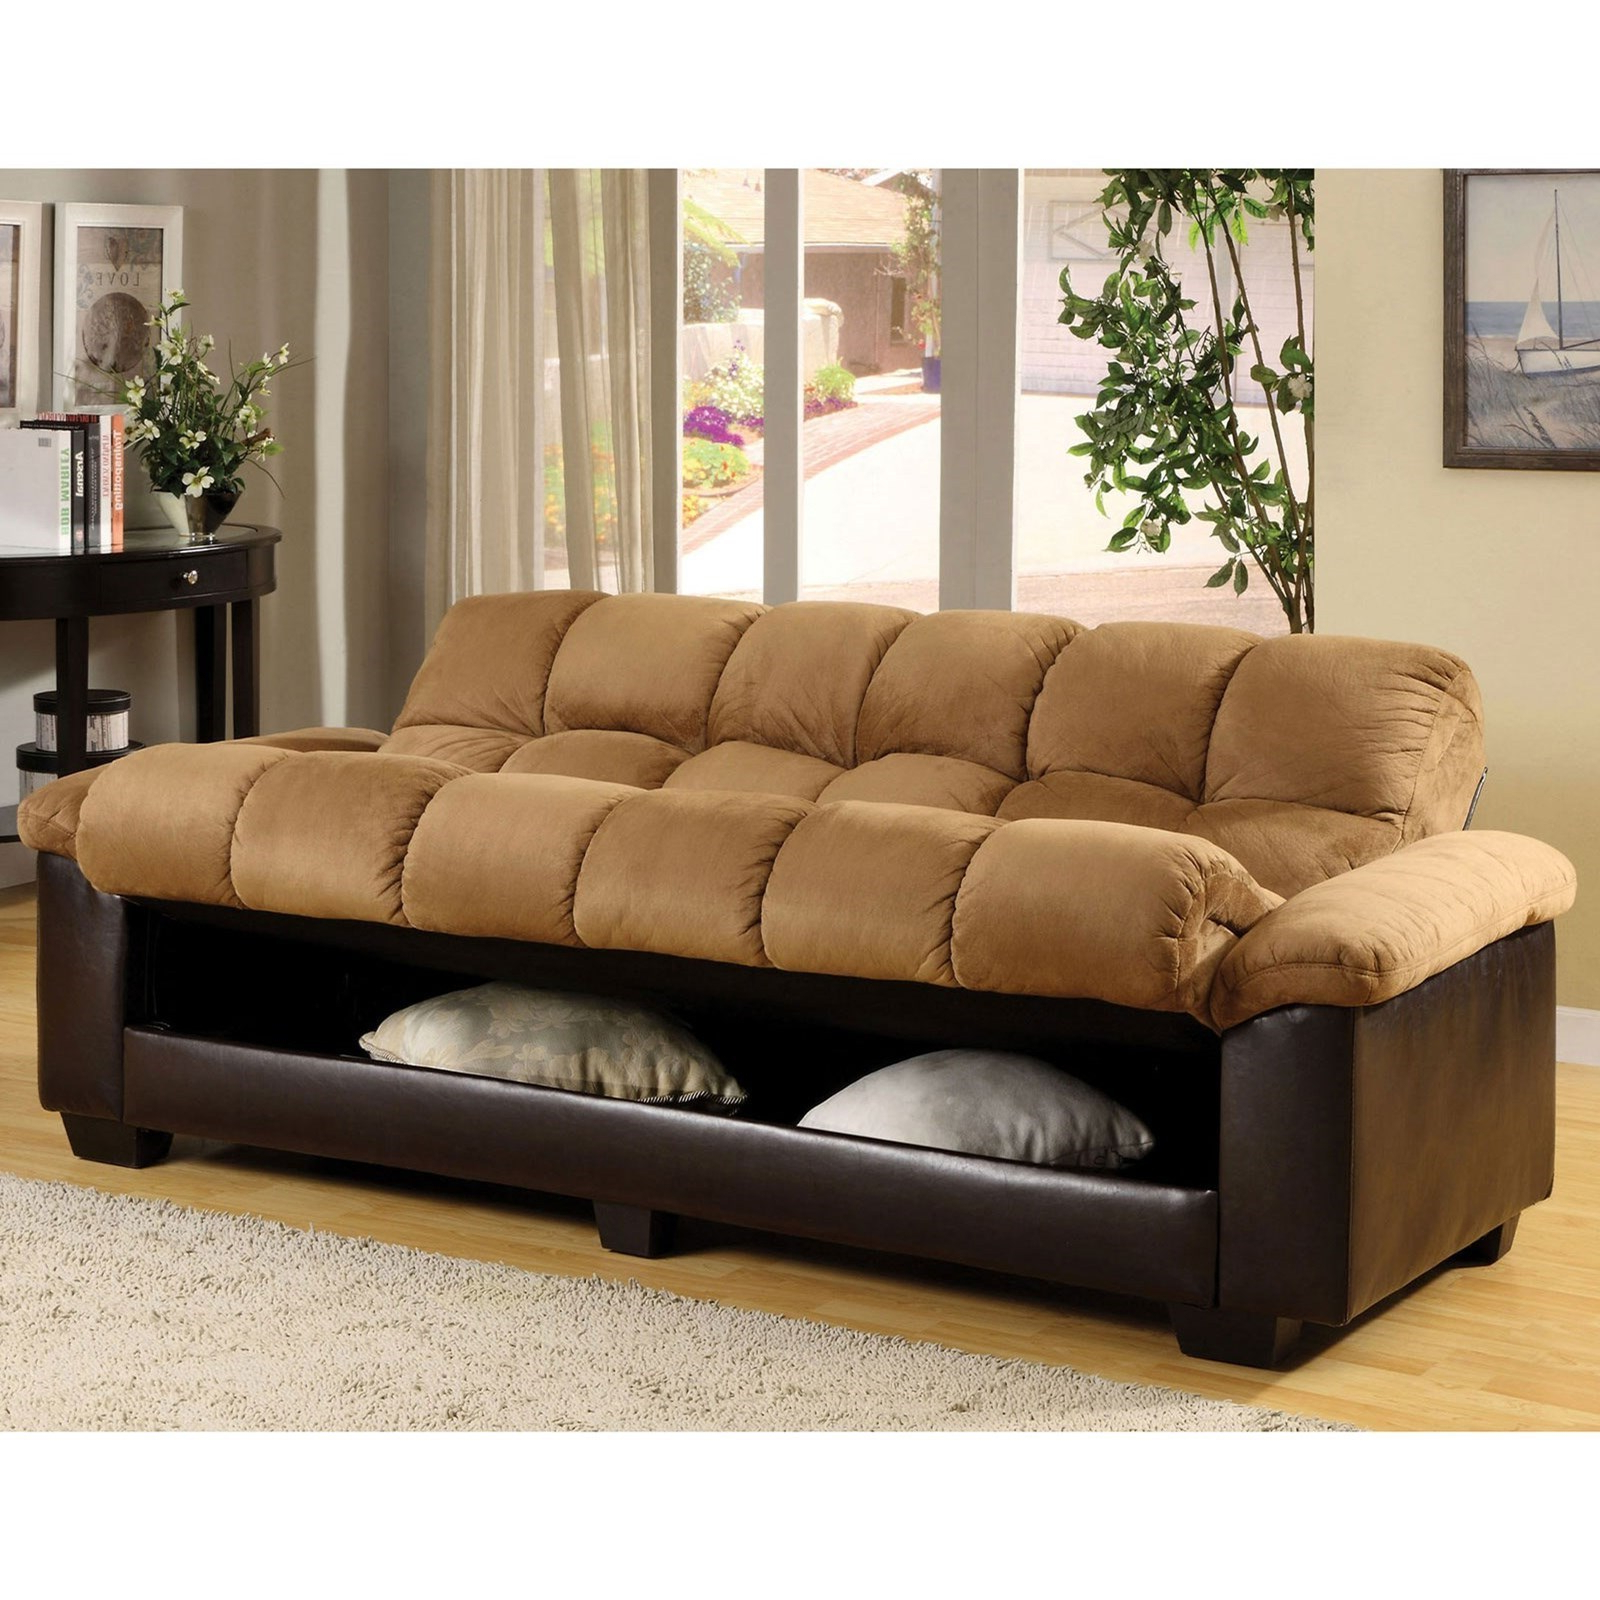 Celine Sectional Futon Sofas With Storage Reclining Couch Within Famous Furniture Of America Cozy Microfiber Futon Sofa Bed With (View 13 of 25)